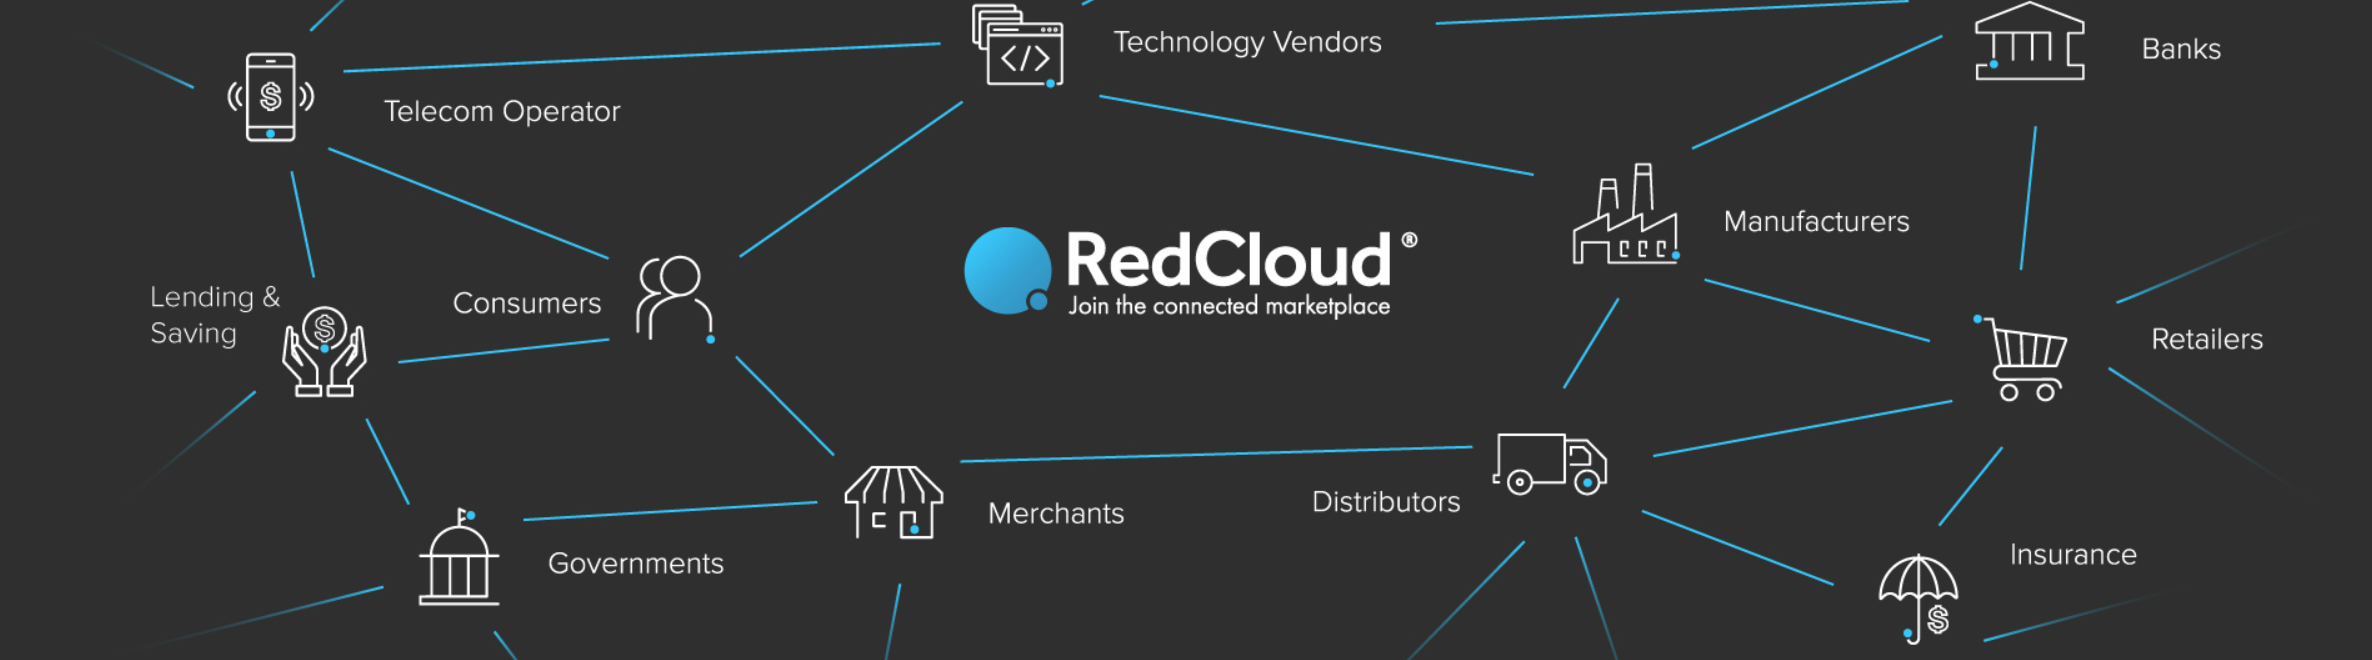 RedCloud digitises transactions across the entire supply chain from Major FMCG groups through to SMEs and micromerchants allowing consumers businesses and financial institutions to connect and transact digitally